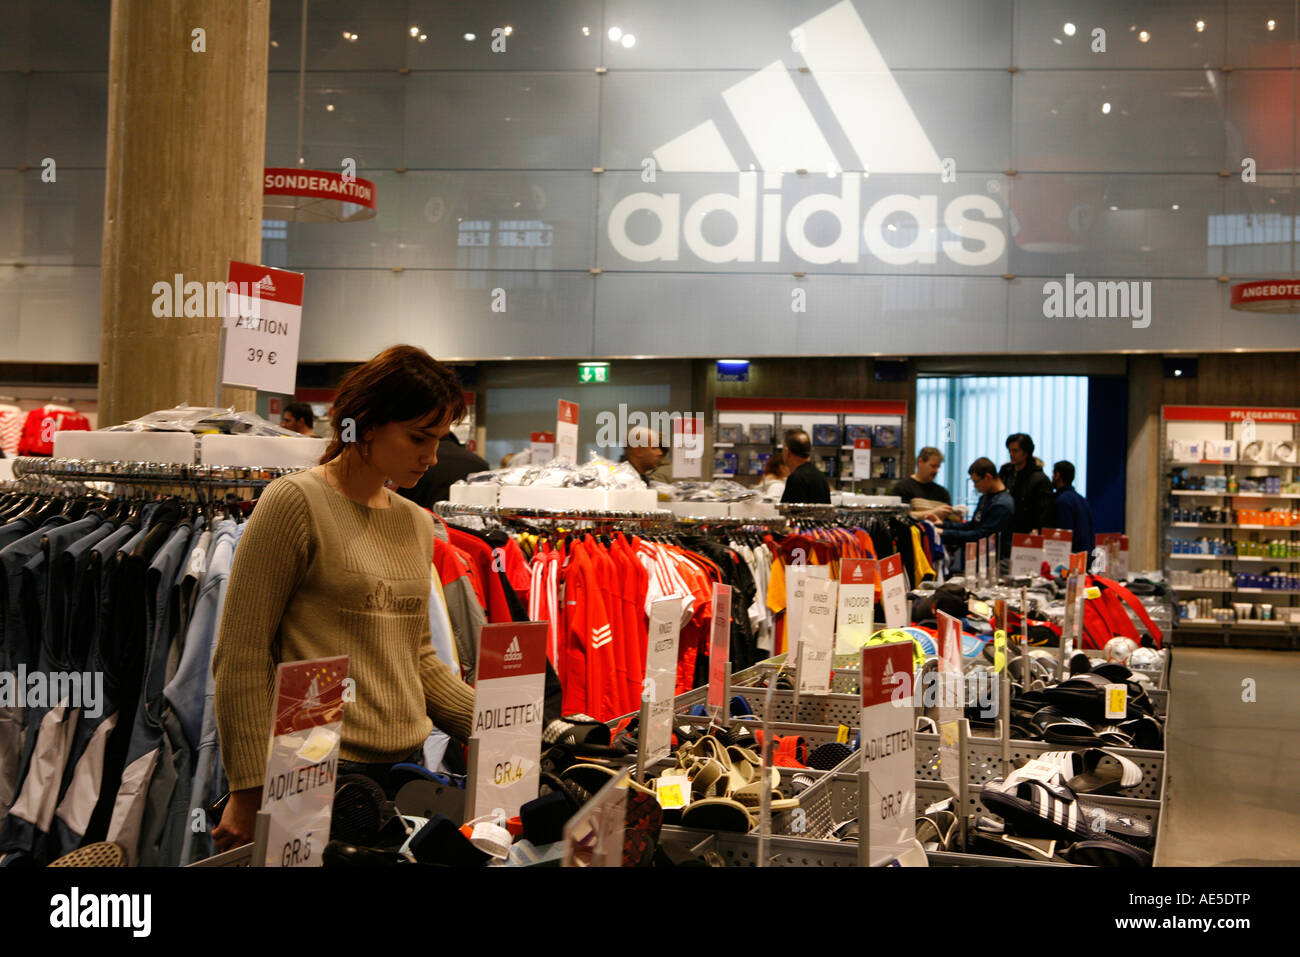 adidas factory outlet berlin